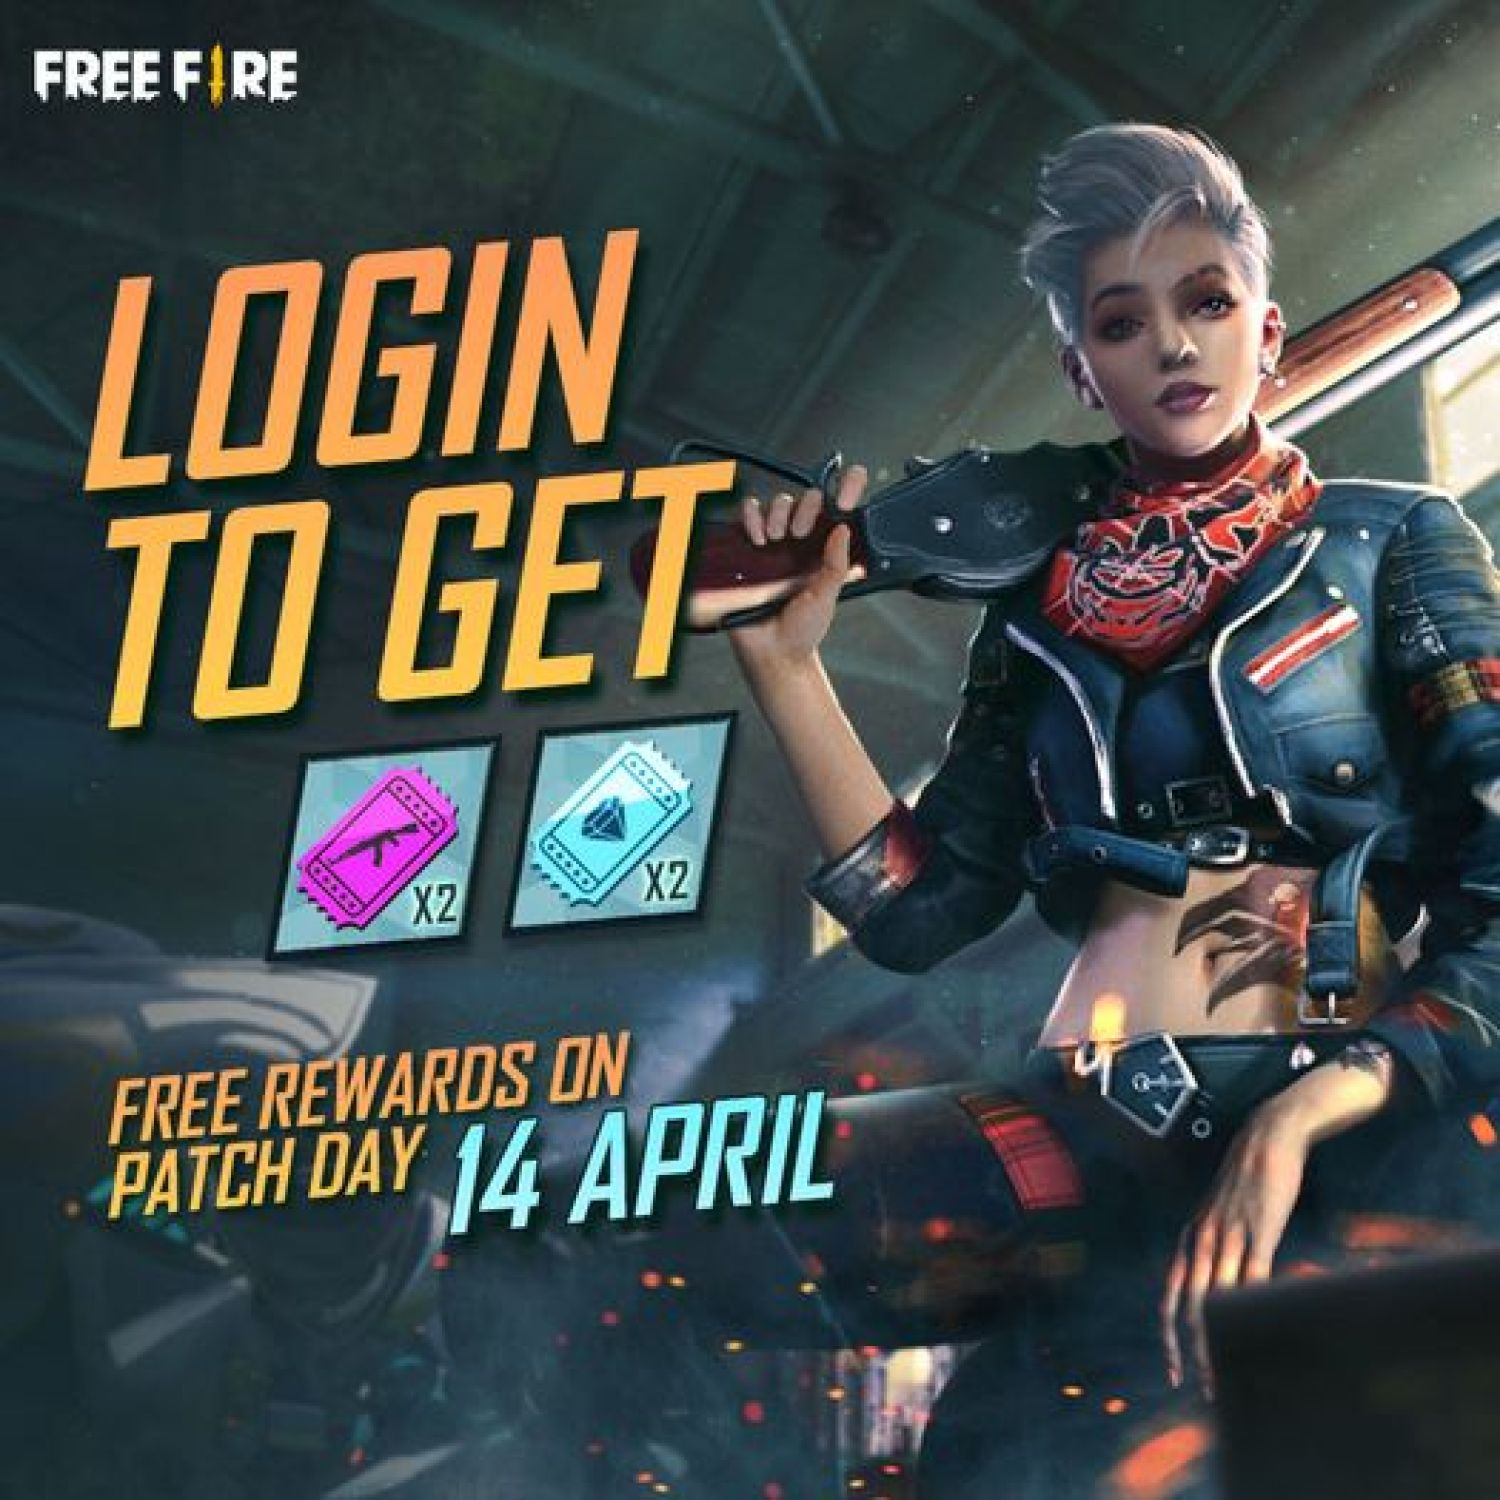 Garena Free Fire OB27 update, Gaming,Technology, Apps News, Free Fire OB27 update, mobile gaming community, Advance Server testing, Garena Free Fire, afamous battle royale game , Free Fire OB27 update , Free Fire OB27 update, Best game in India,